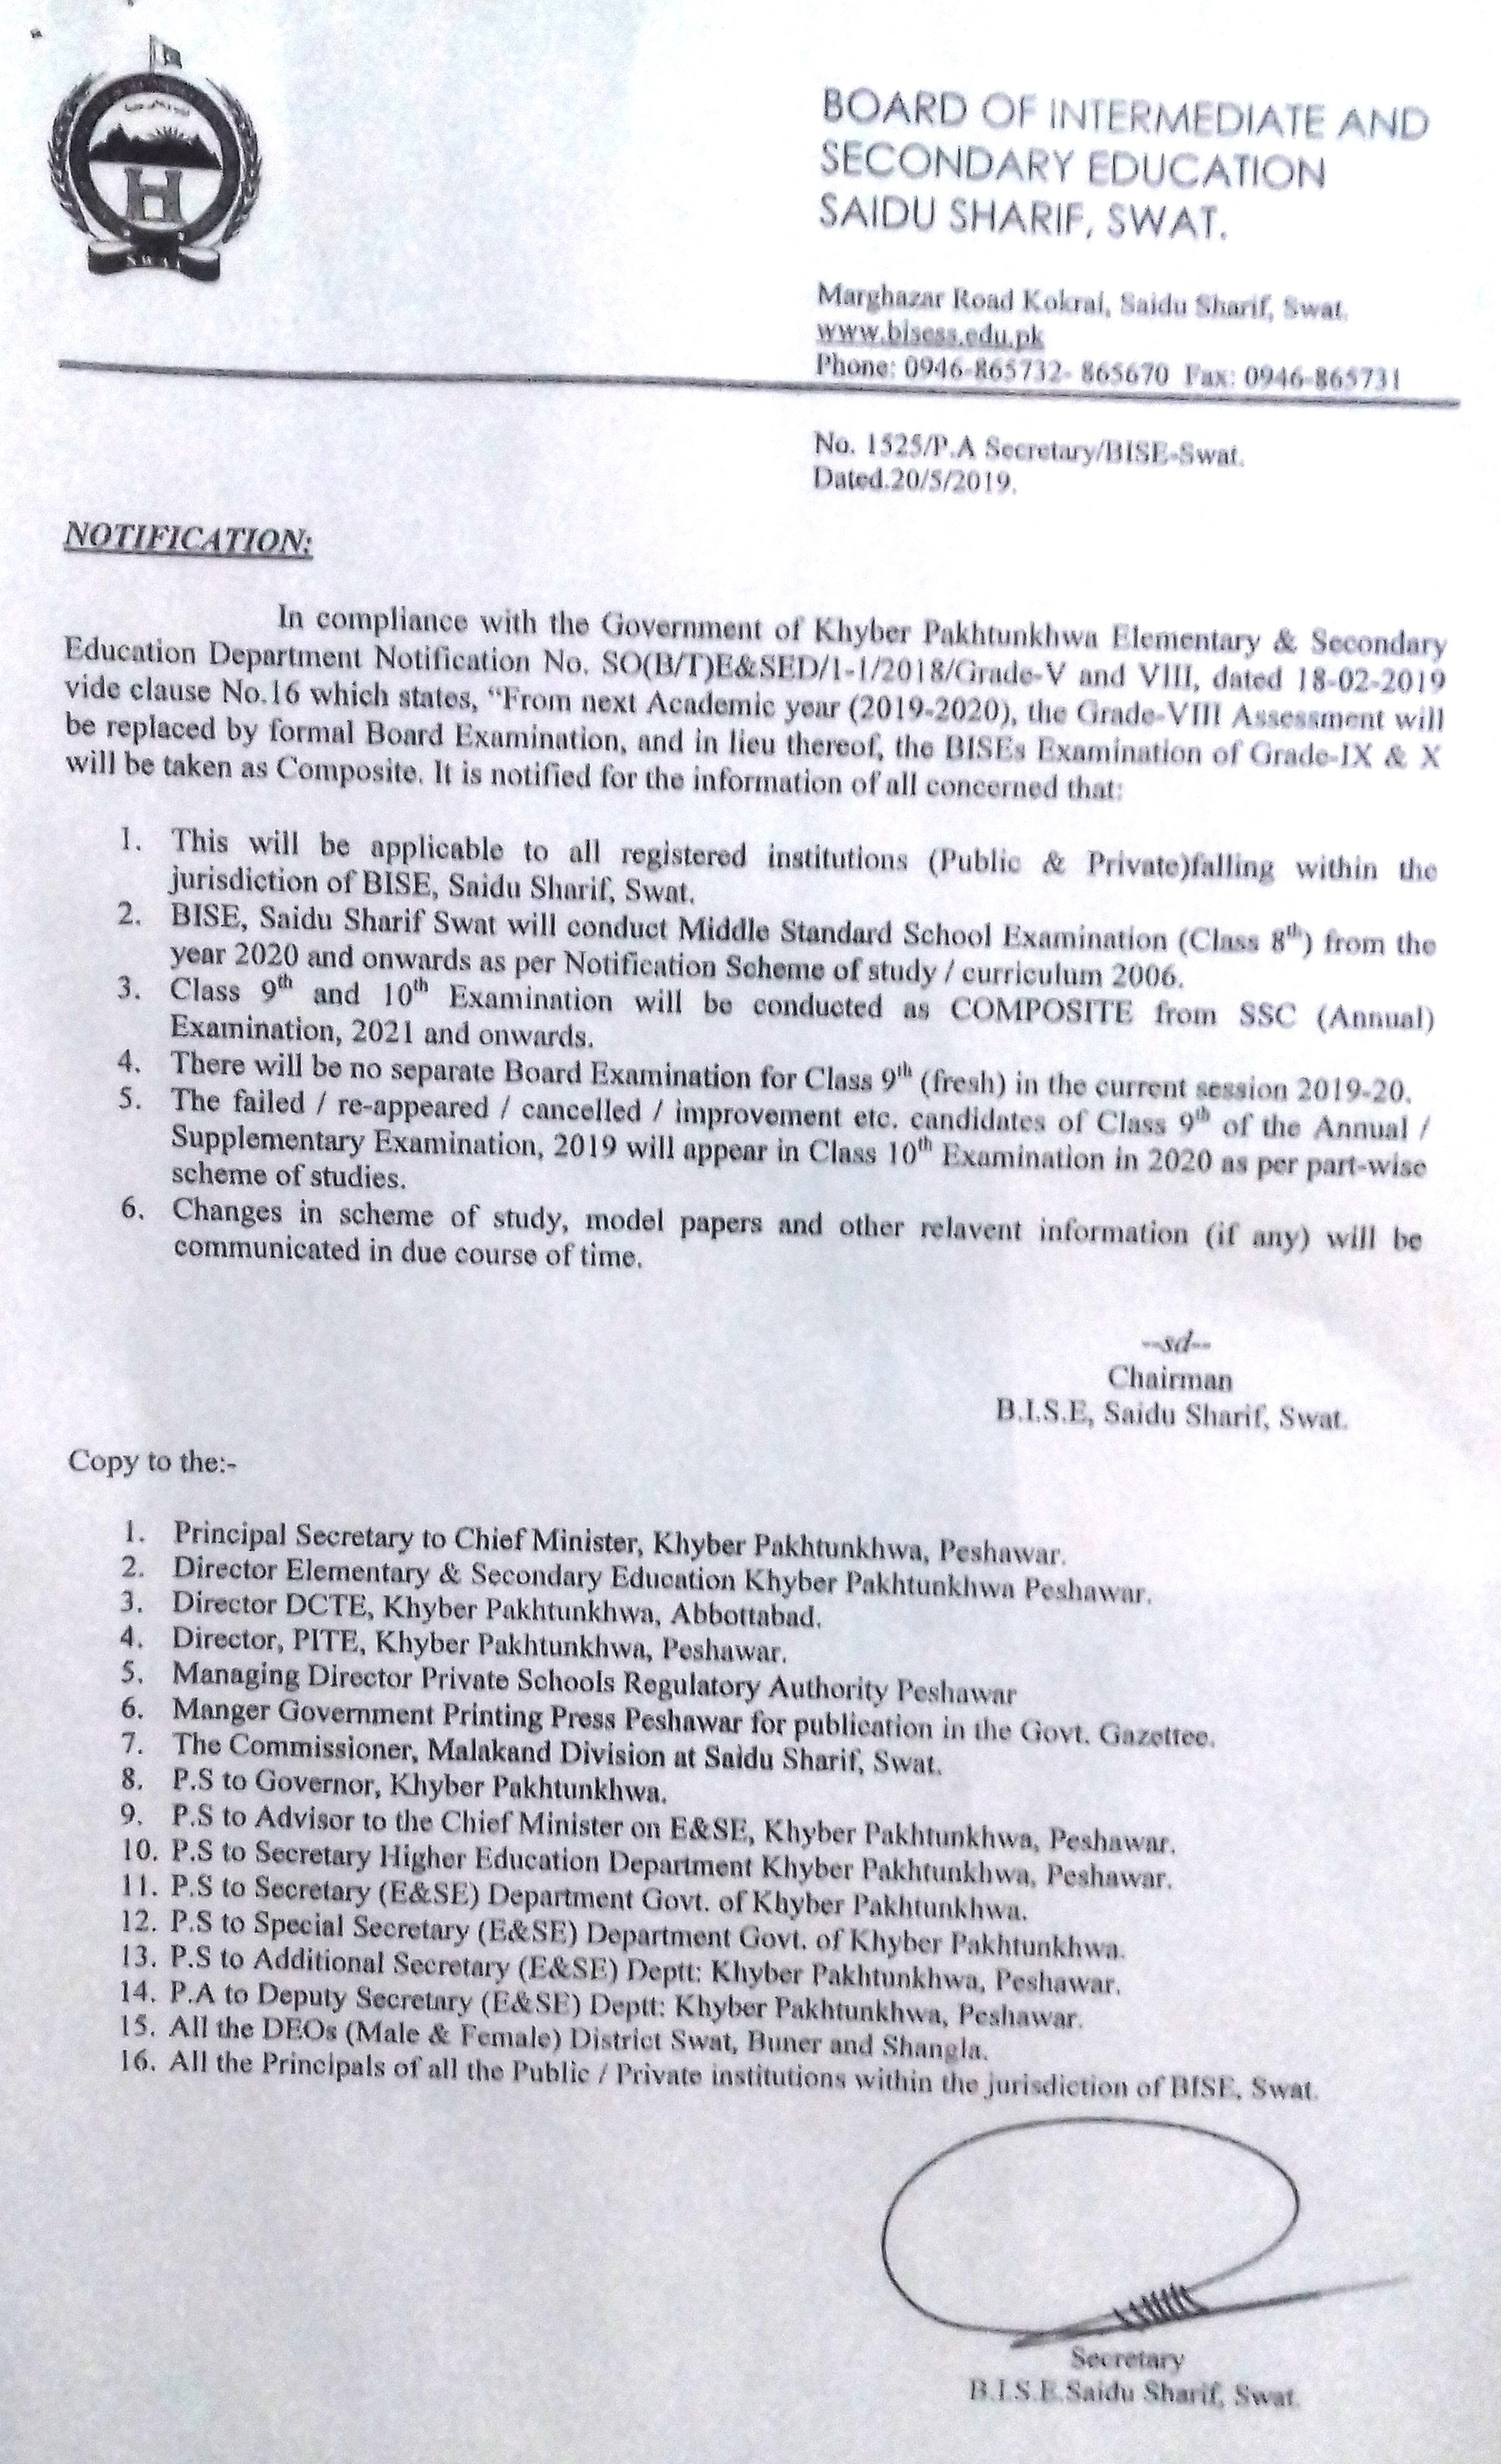 All Announced Results Of Bise, Saidu Sharif Swat